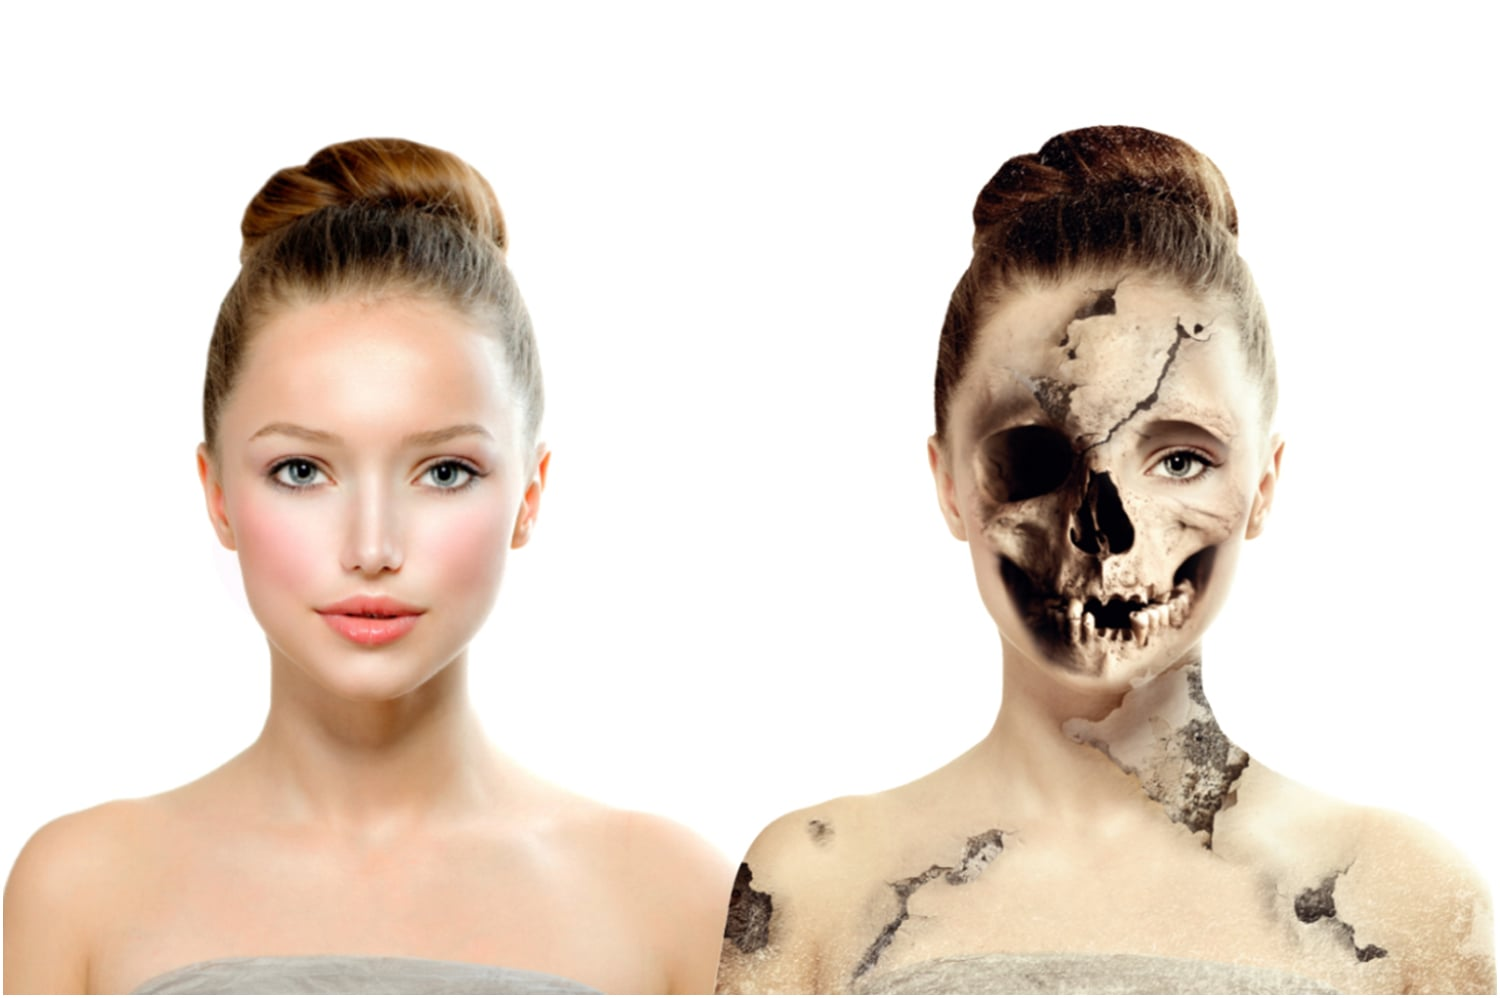 Horror Background and Overlays in 2020: 270 Horror Overlays + 4 actions - Halloween Bundle - $9 - 40